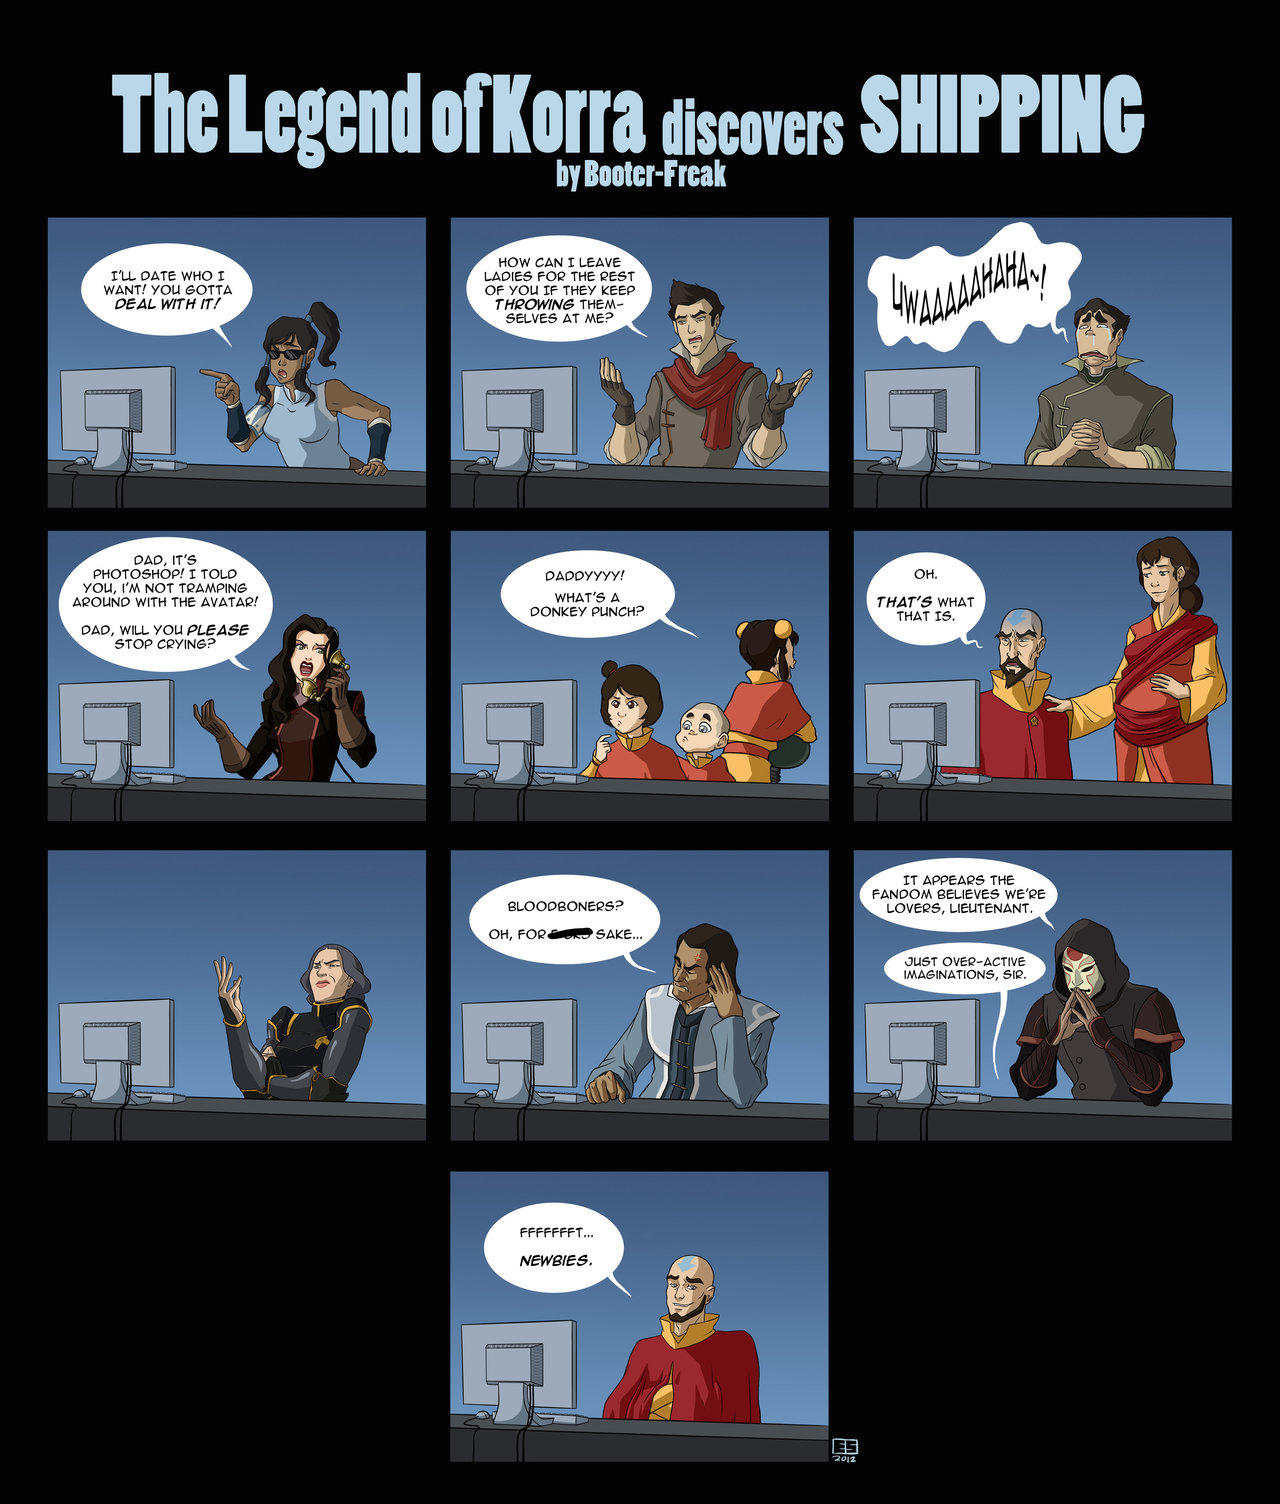 The Legend of Korra discovers shipping   Avatar: The Last ...